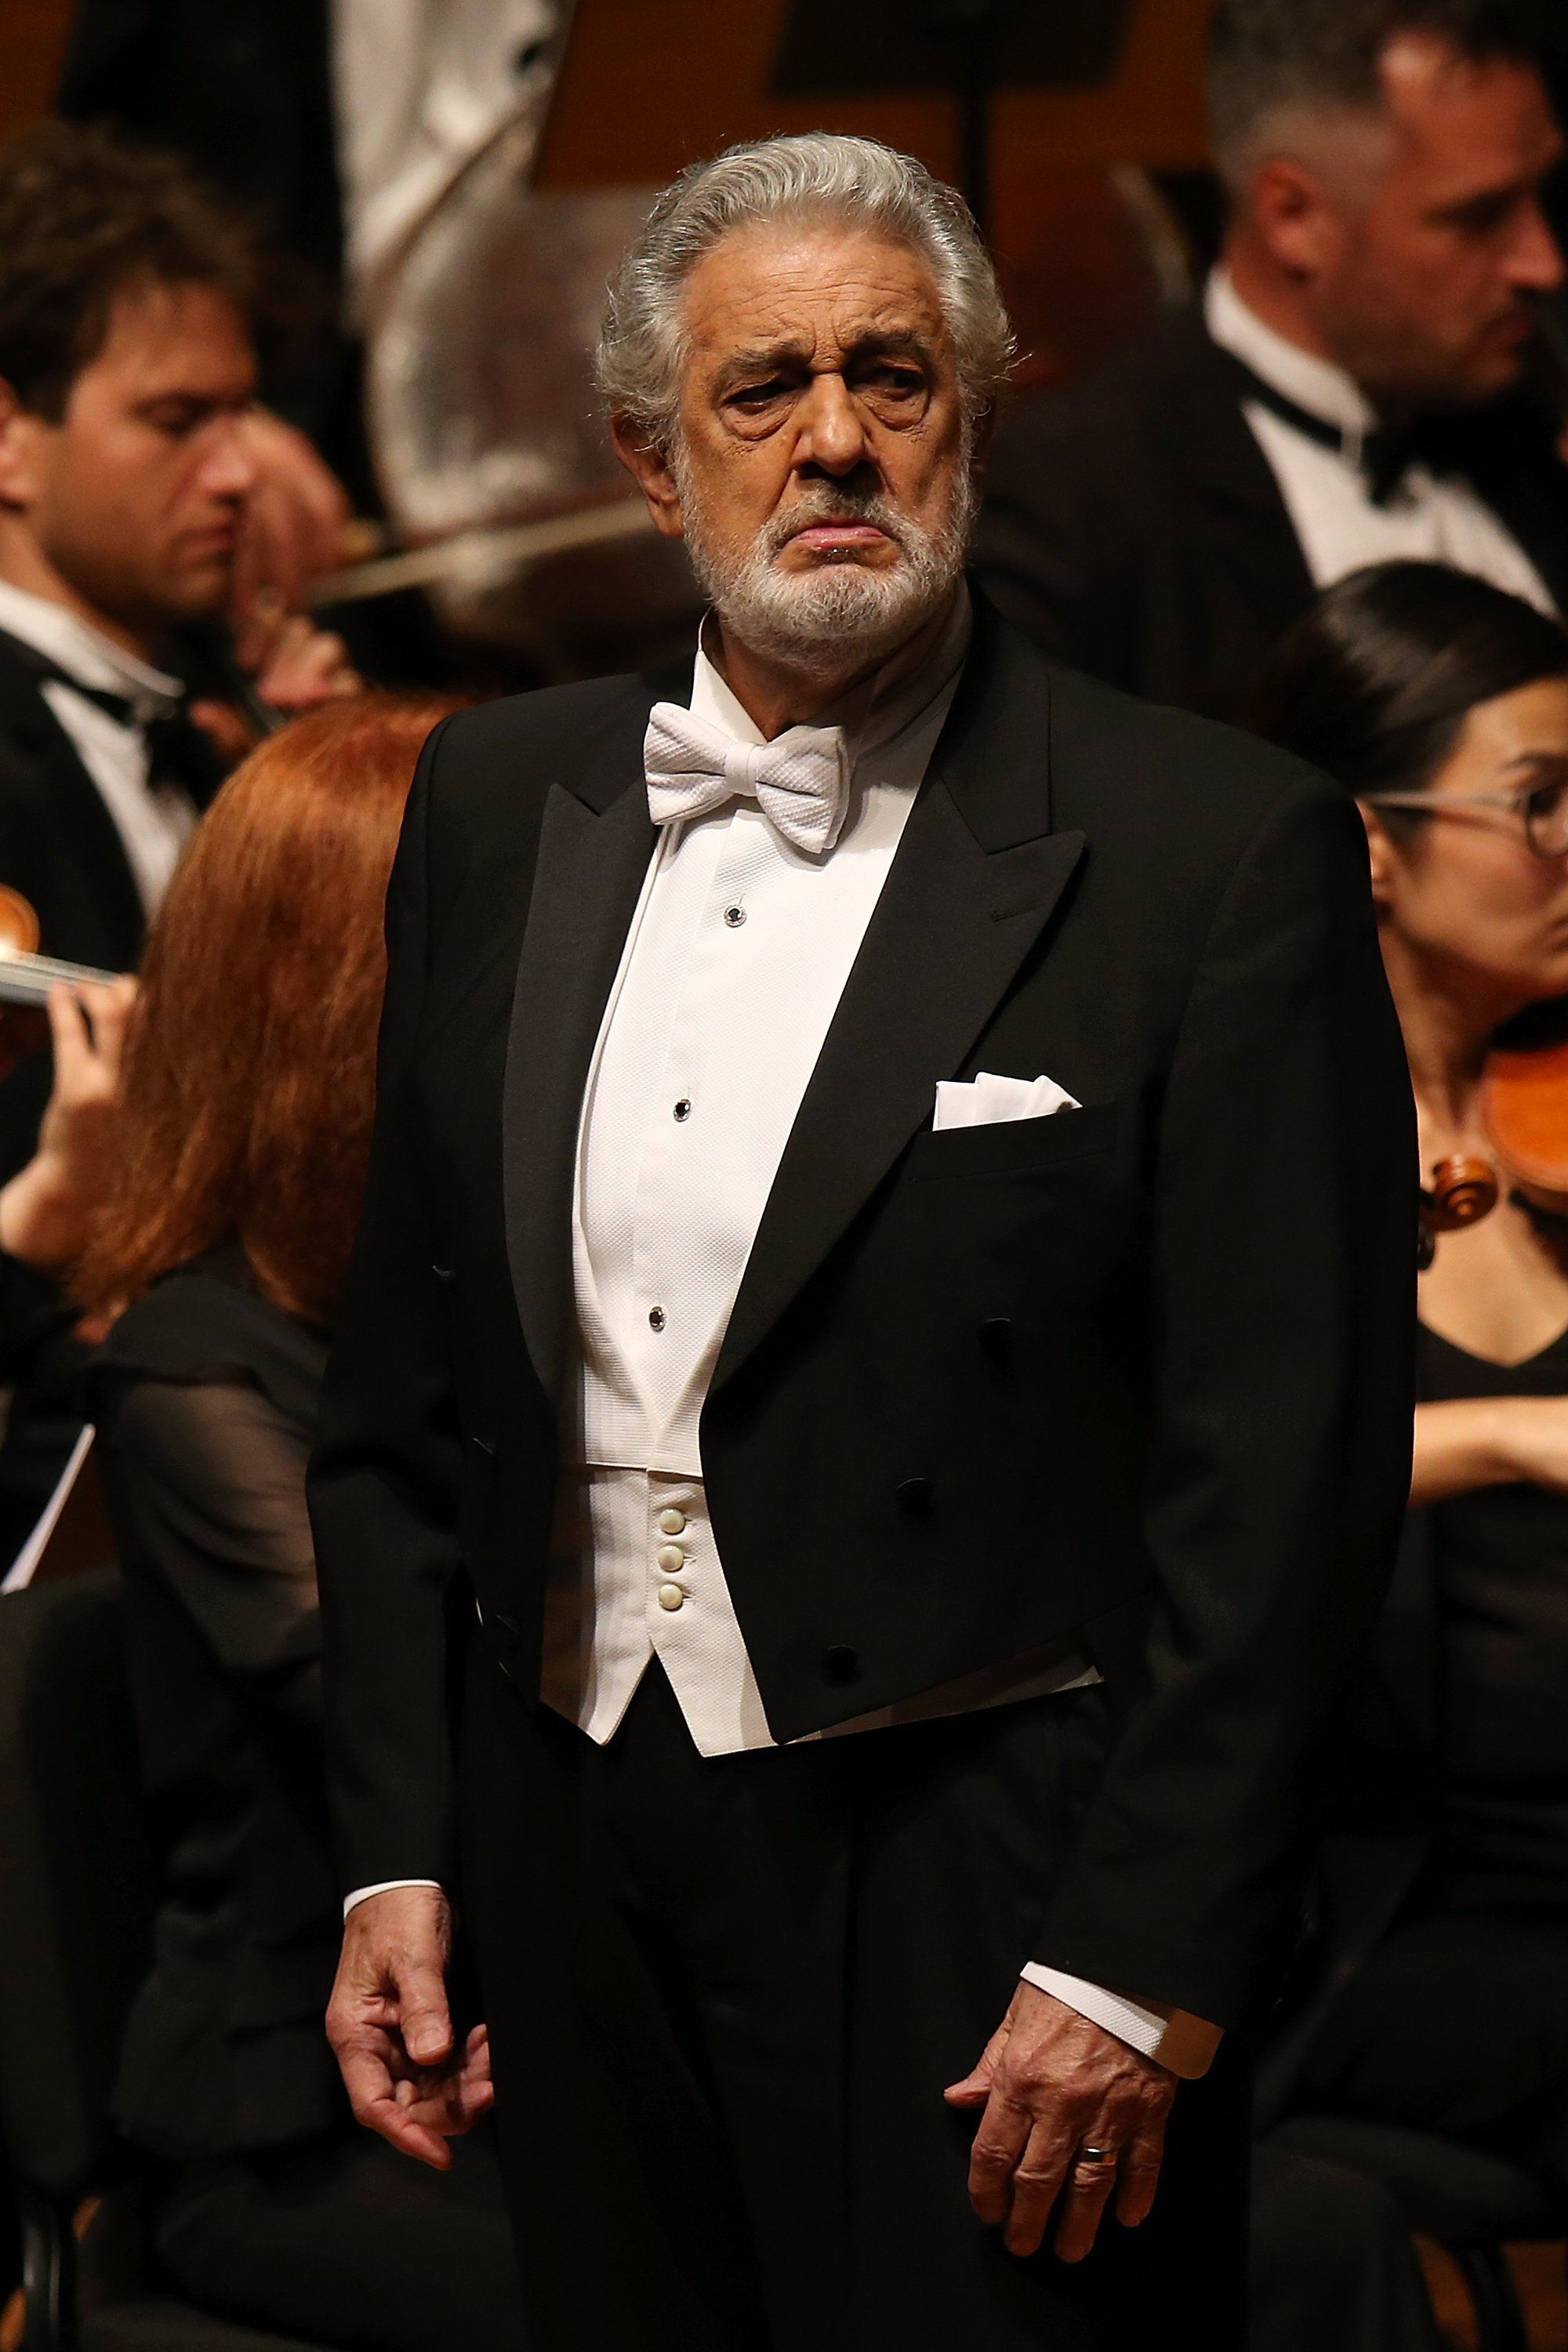 Placido Domingo performing onstage during LA Opera's Nabucco in Concert at the Musco Center for the Arts in Orange, California | Photo: Phillip Faraone/Getty Images for Musco Center for the Arts at Chapman University